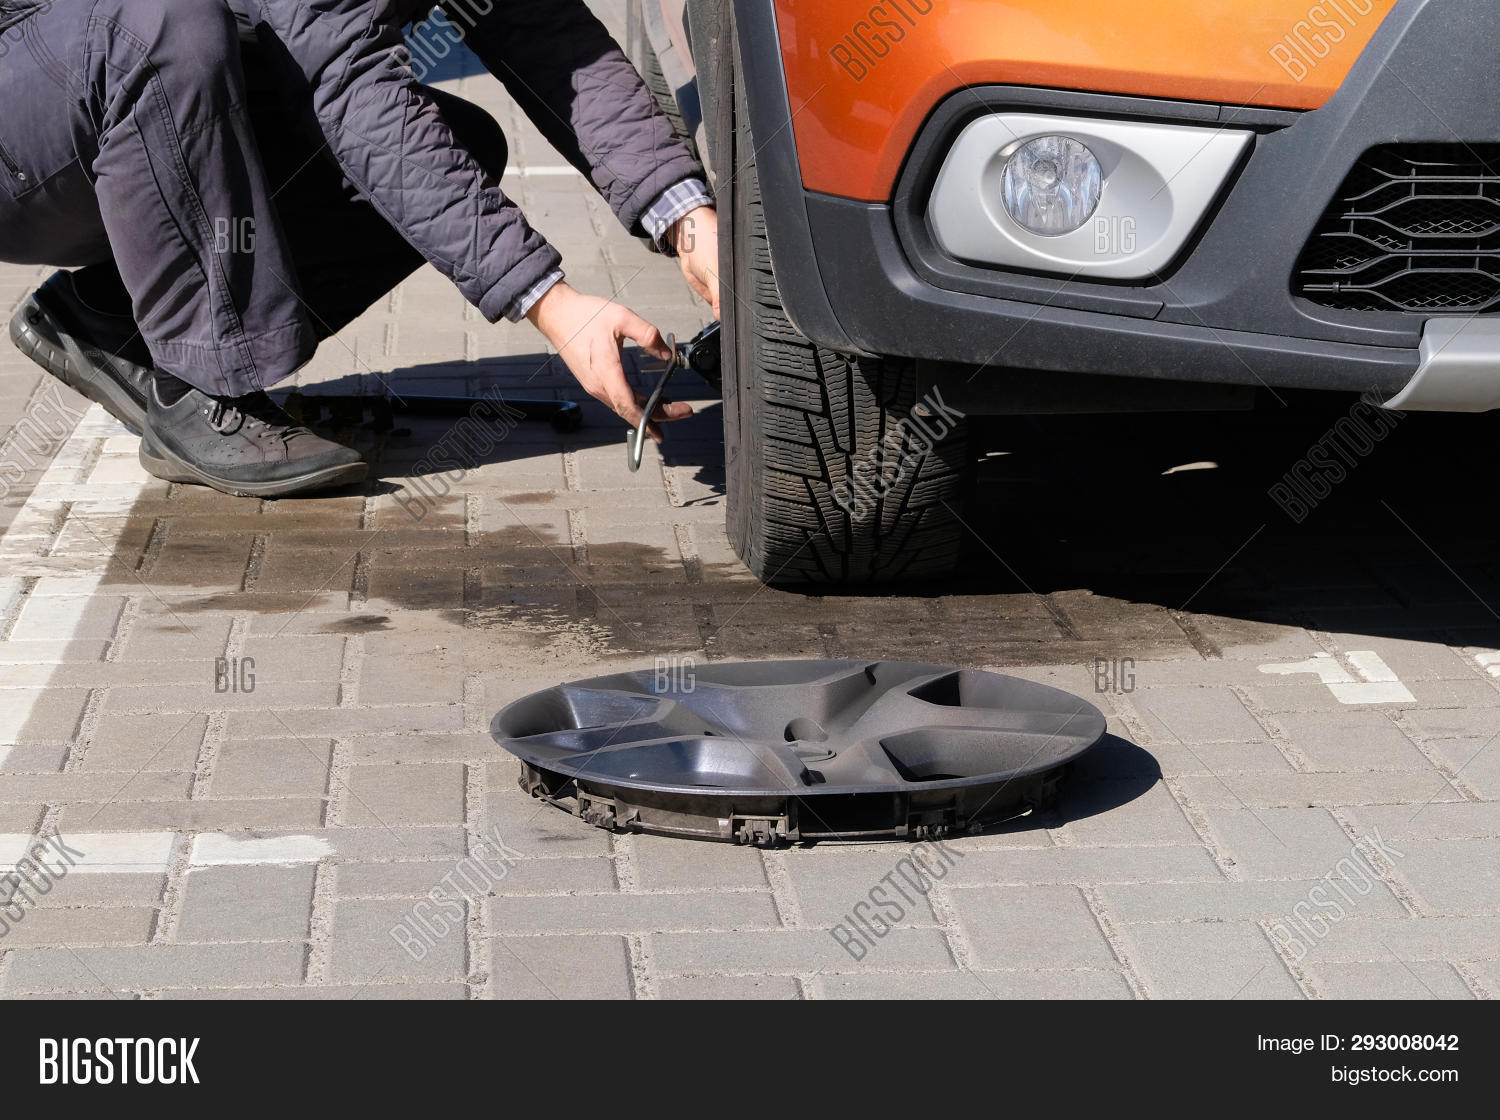 Man Is Changing Wheel After A Car Break Down. Damaged Car Tyre. Wheel Balancing Or Repair And Change